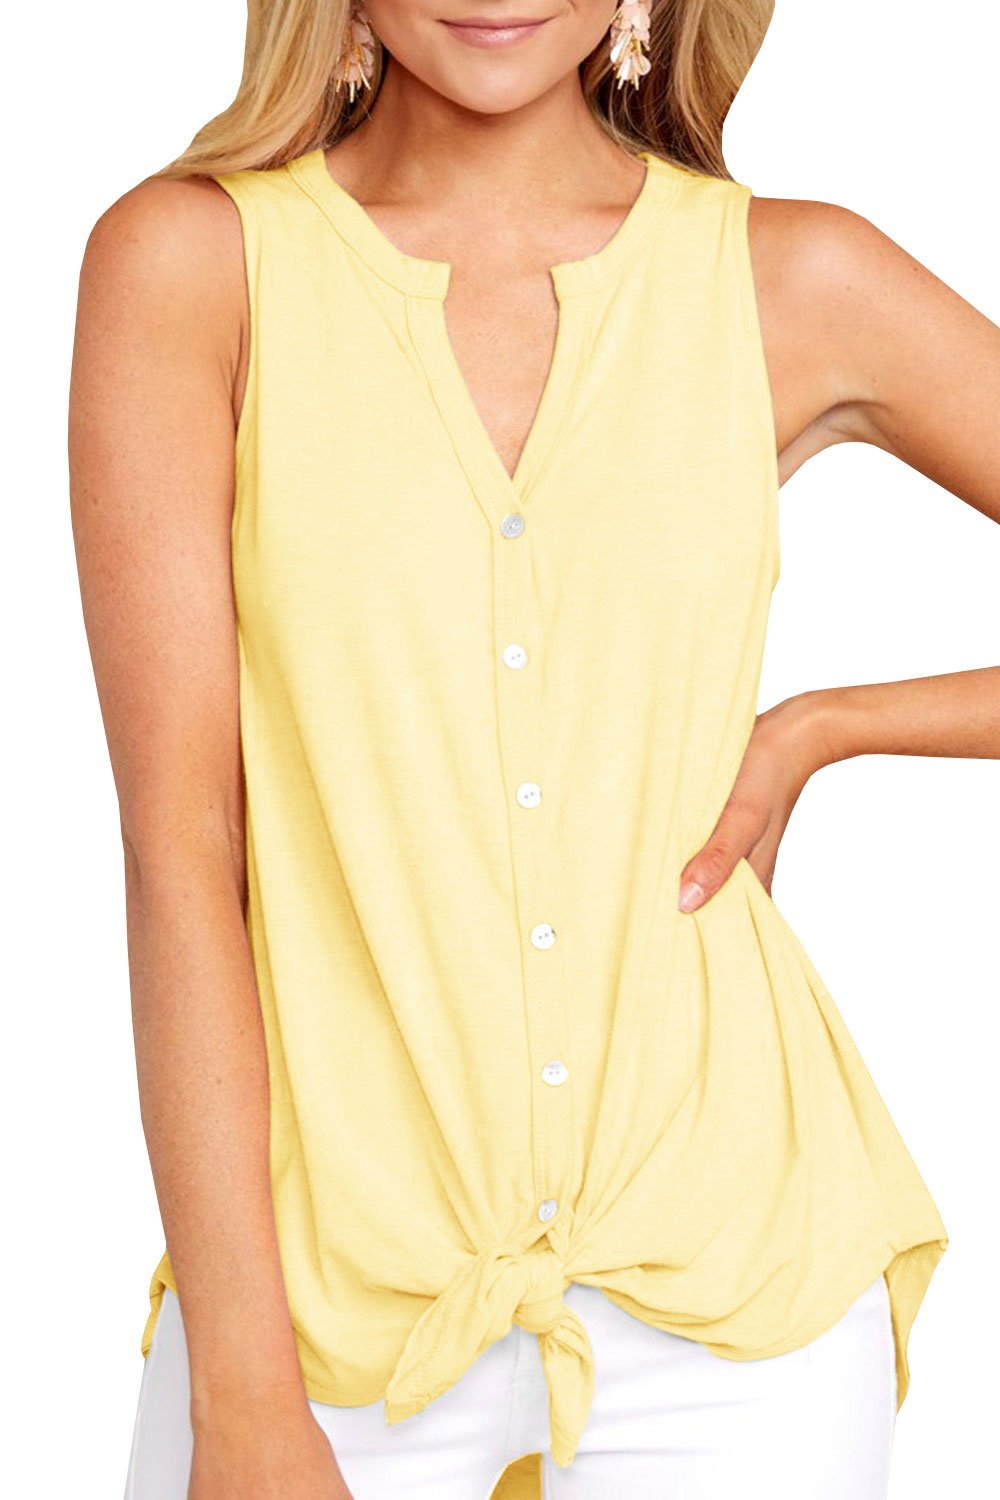 Inorin Womens Button Down Long Tank Tops Tie Front Summer Casual V Neck Sleeveless Tunic Shirts Yellow